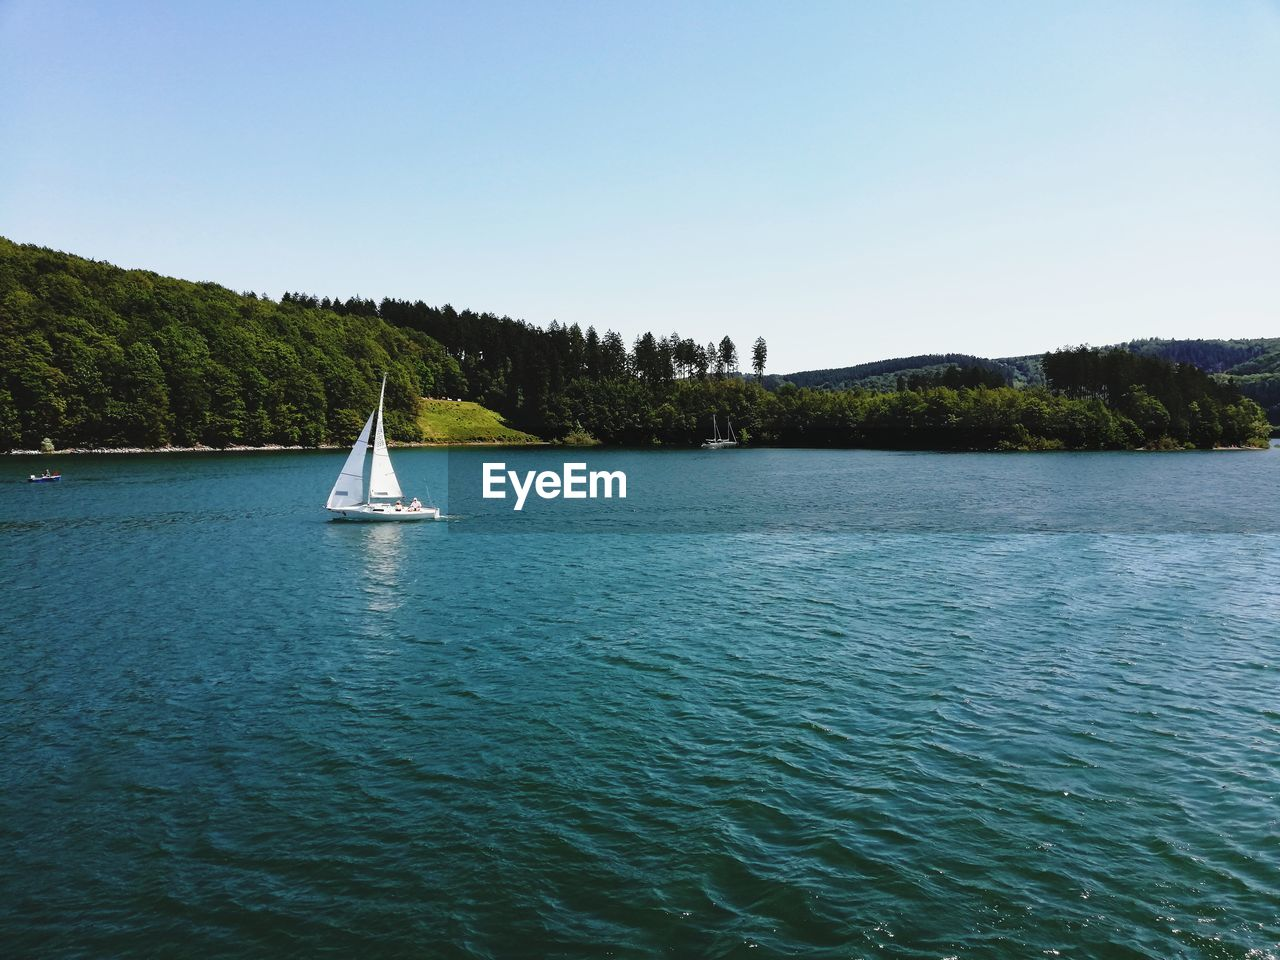 water, sky, beauty in nature, waterfront, clear sky, scenics - nature, tranquility, tree, transportation, nautical vessel, tranquil scene, copy space, nature, plant, sailboat, day, sea, no people, non-urban scene, outdoors